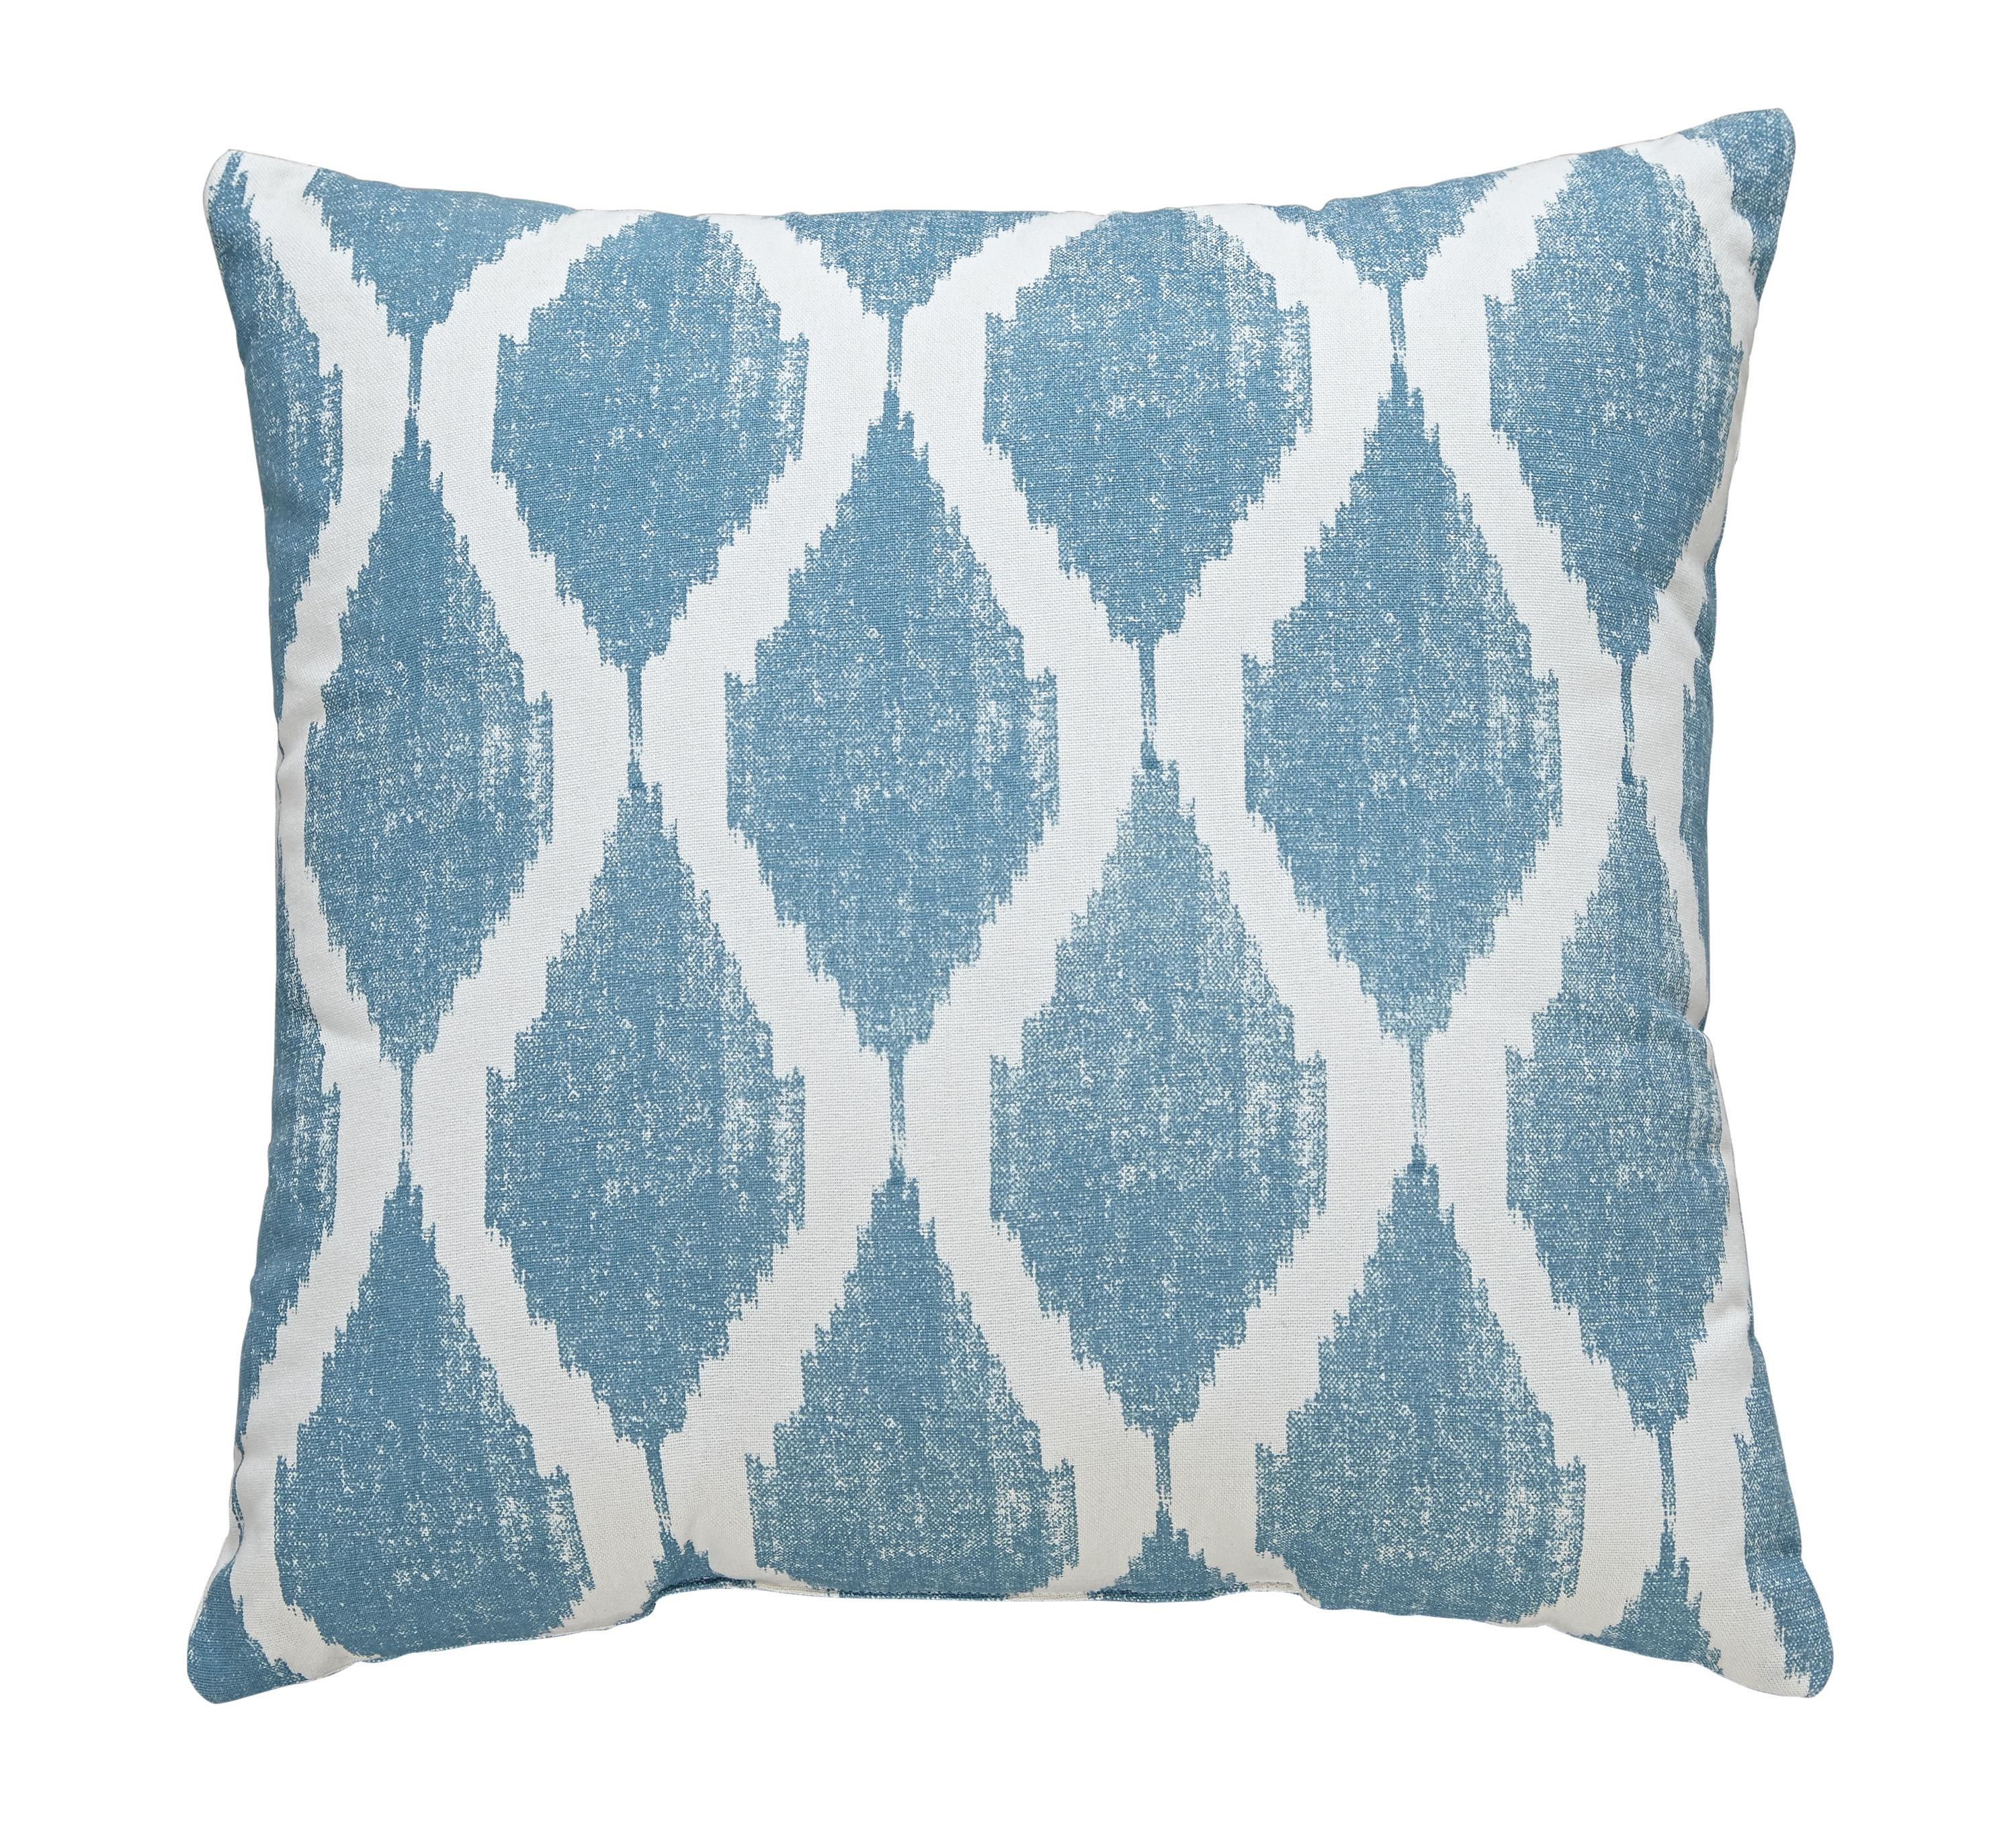 Signature Design by Ashley Pillows Bruce - Turquoise Pillow - Item Number: A1000510P